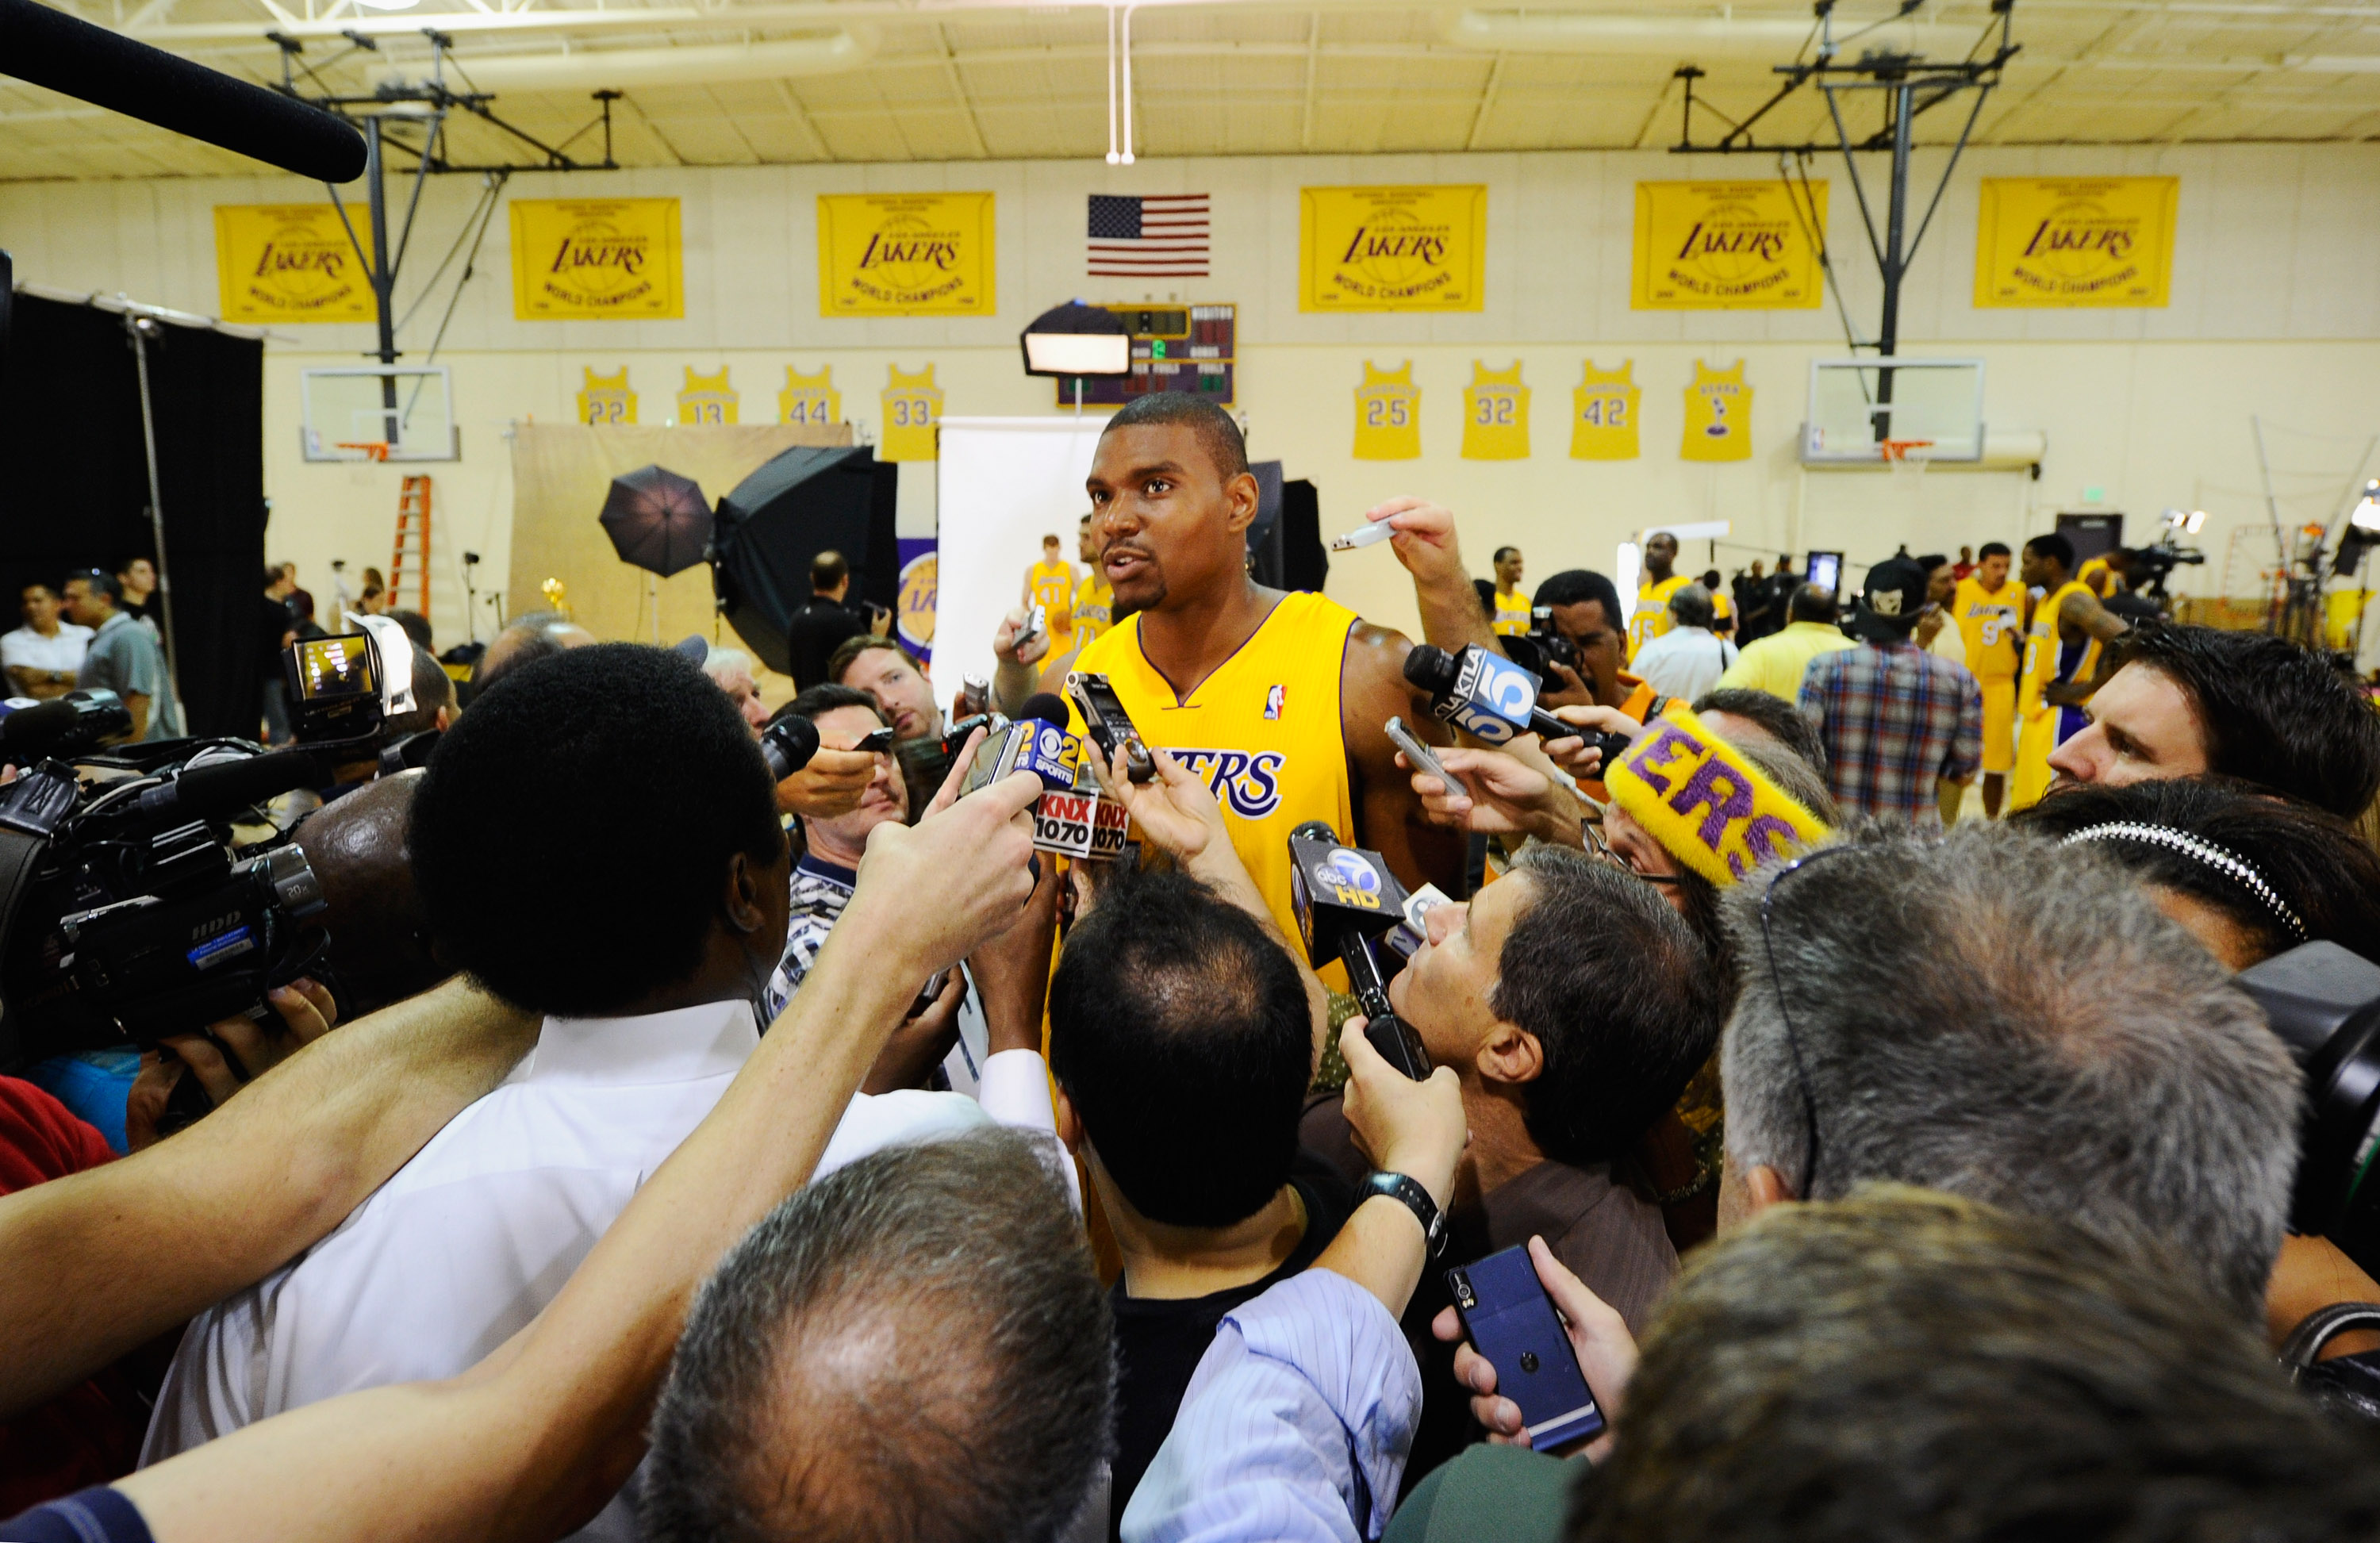 EL SEGUNDO, CA - SEPTEMBER 25:  Andrew Bynum #17 of the Los Angeles Lakers speaks to reporters at a news conference during Media Day at the Toyota Center on September 25, 2010 in El Segundo, California. NOTE TO USER: User expressly acknowledges and agrees